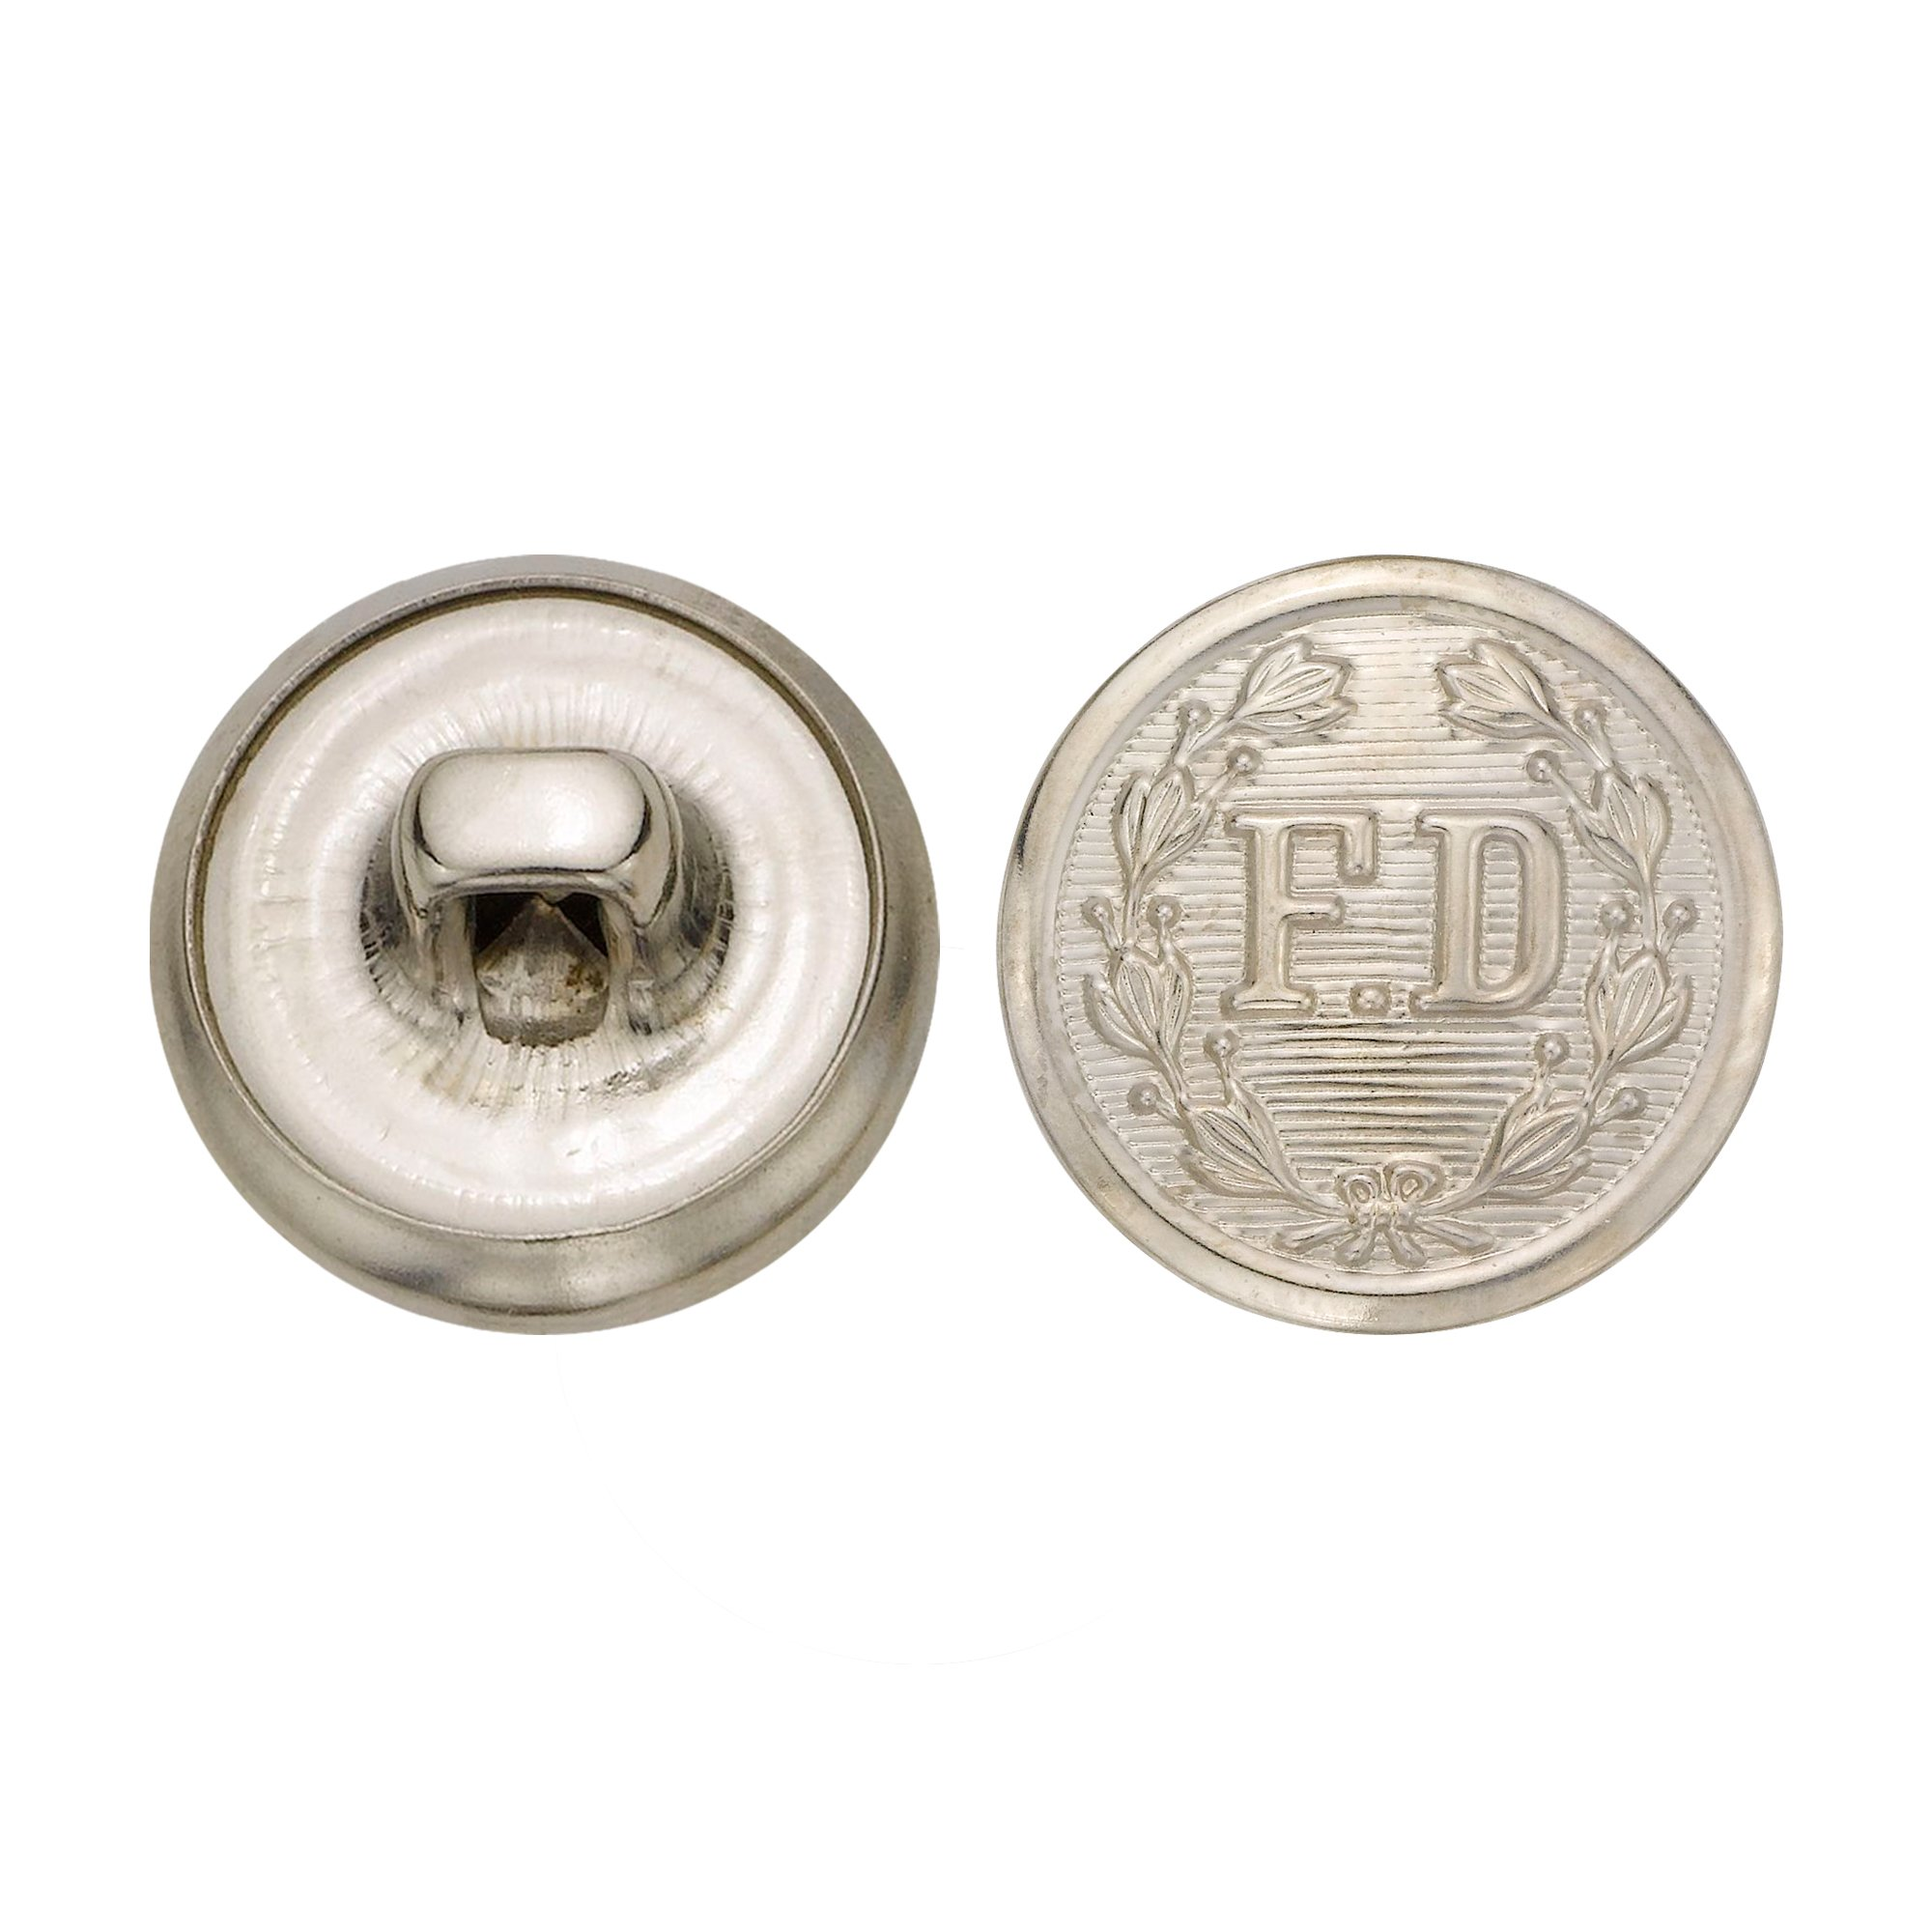 C&C Metal Products 5259 Fire Department Metal Button, Size 24 Ligne, Nickel, 72-Pack